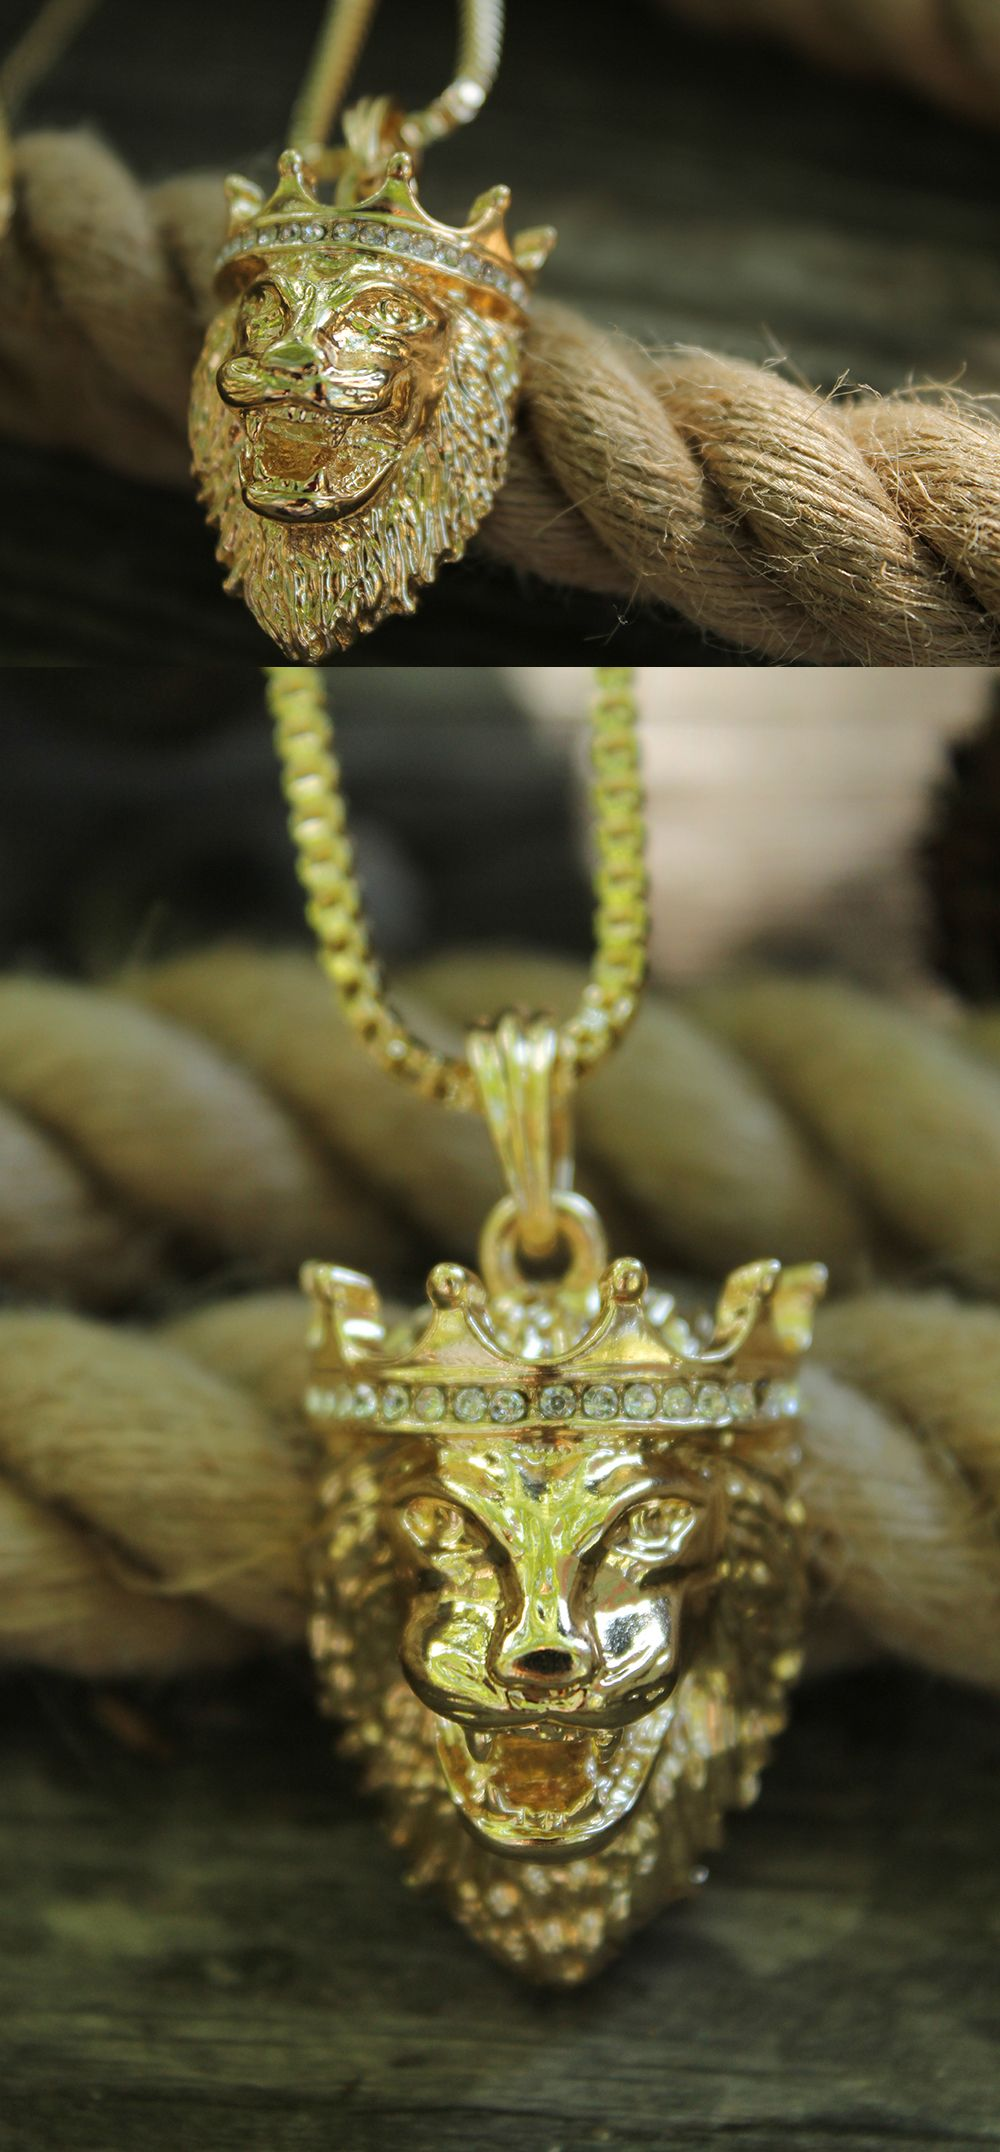 zirconia fullscreen view lyst pendant gold wblack yellow lion sterling jewelry sabo thomas silver